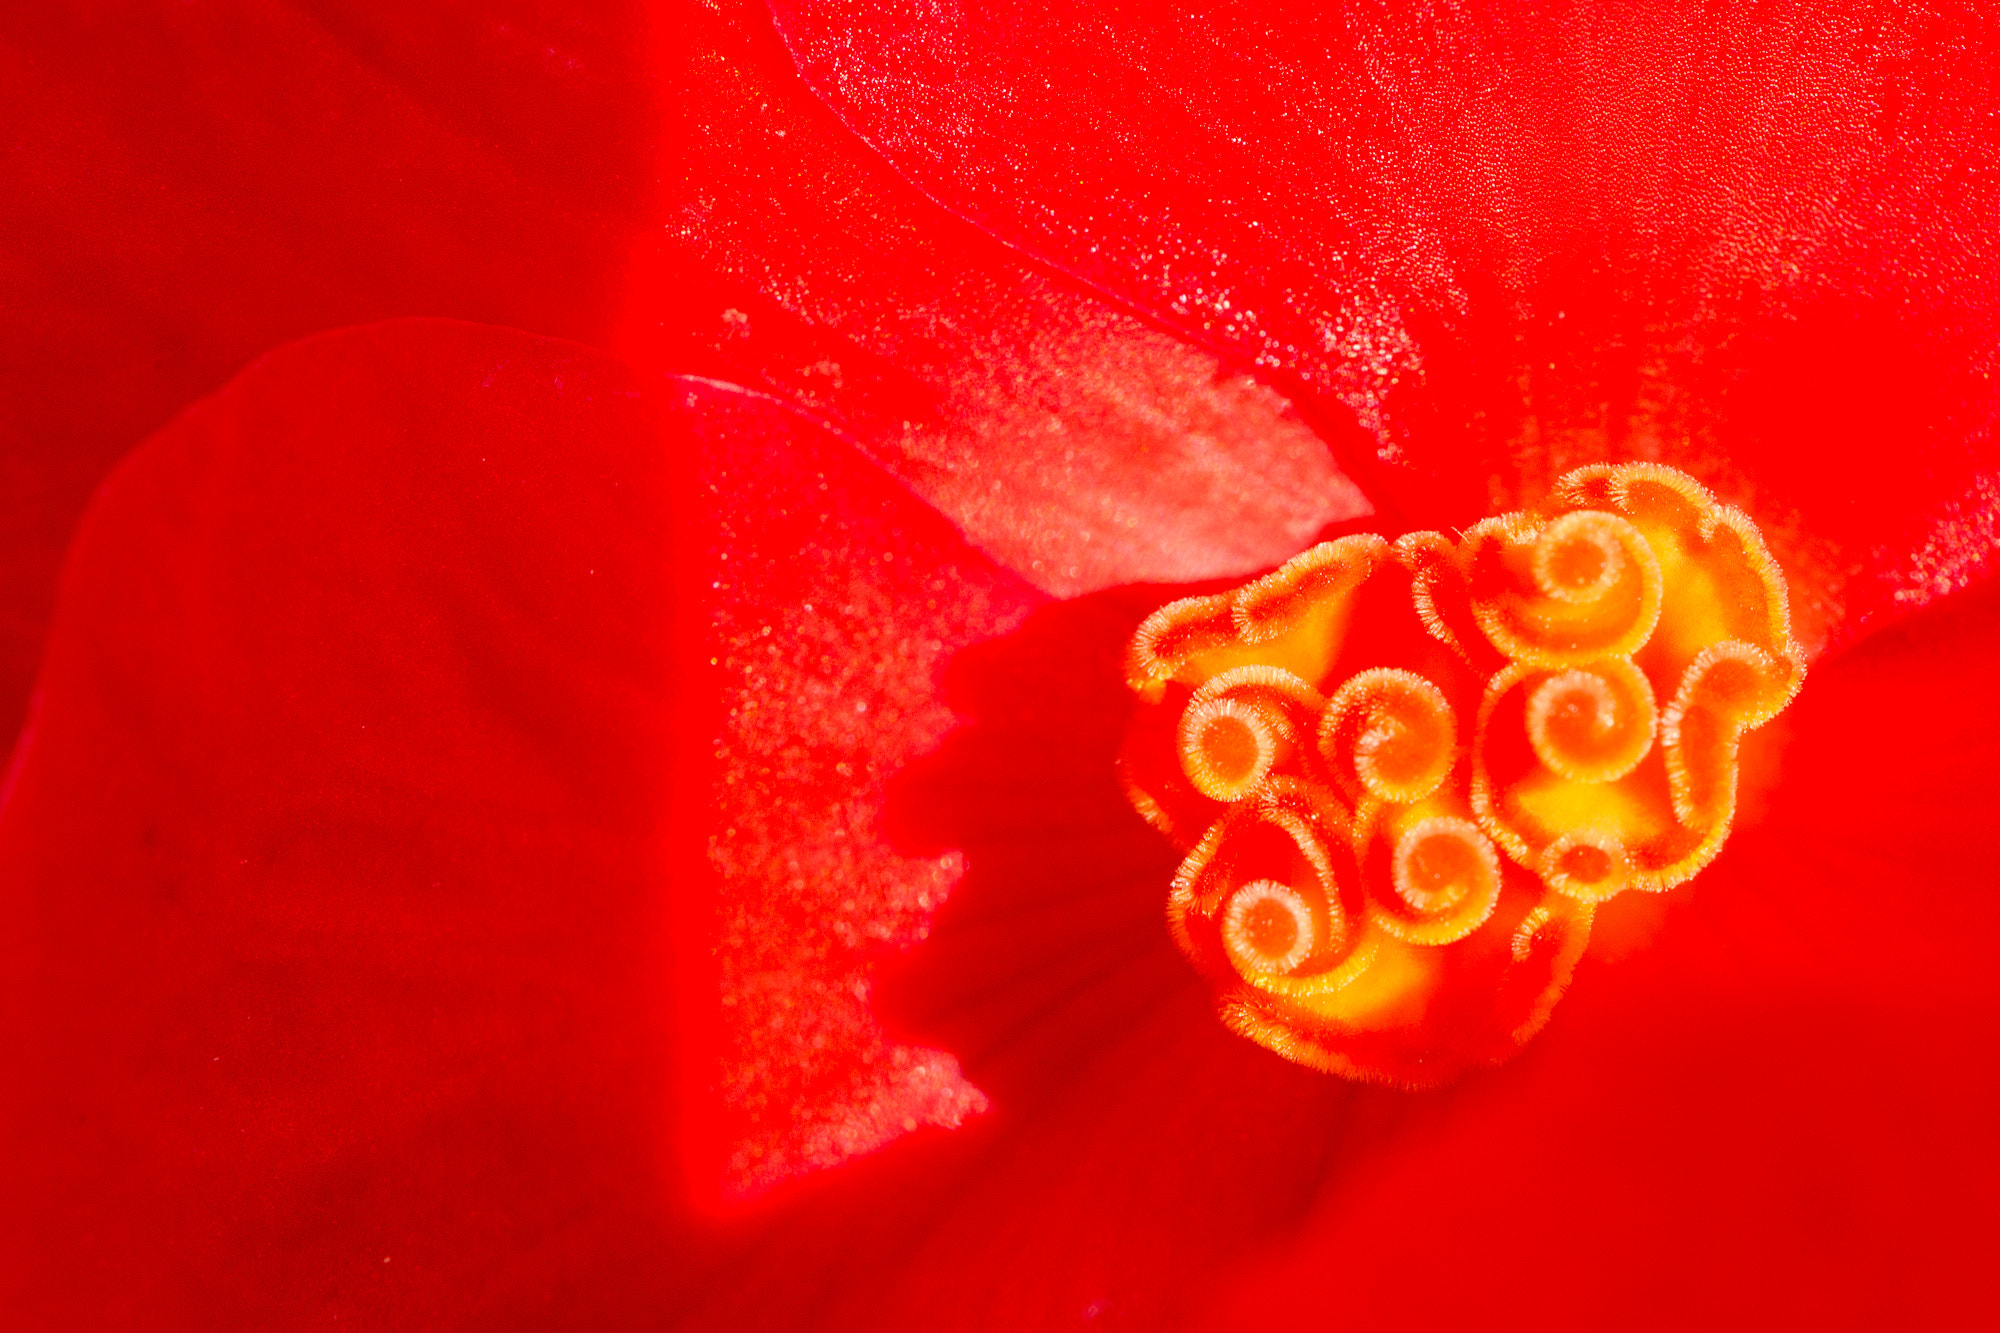 Photograph Red by Joseph Calev on 500px